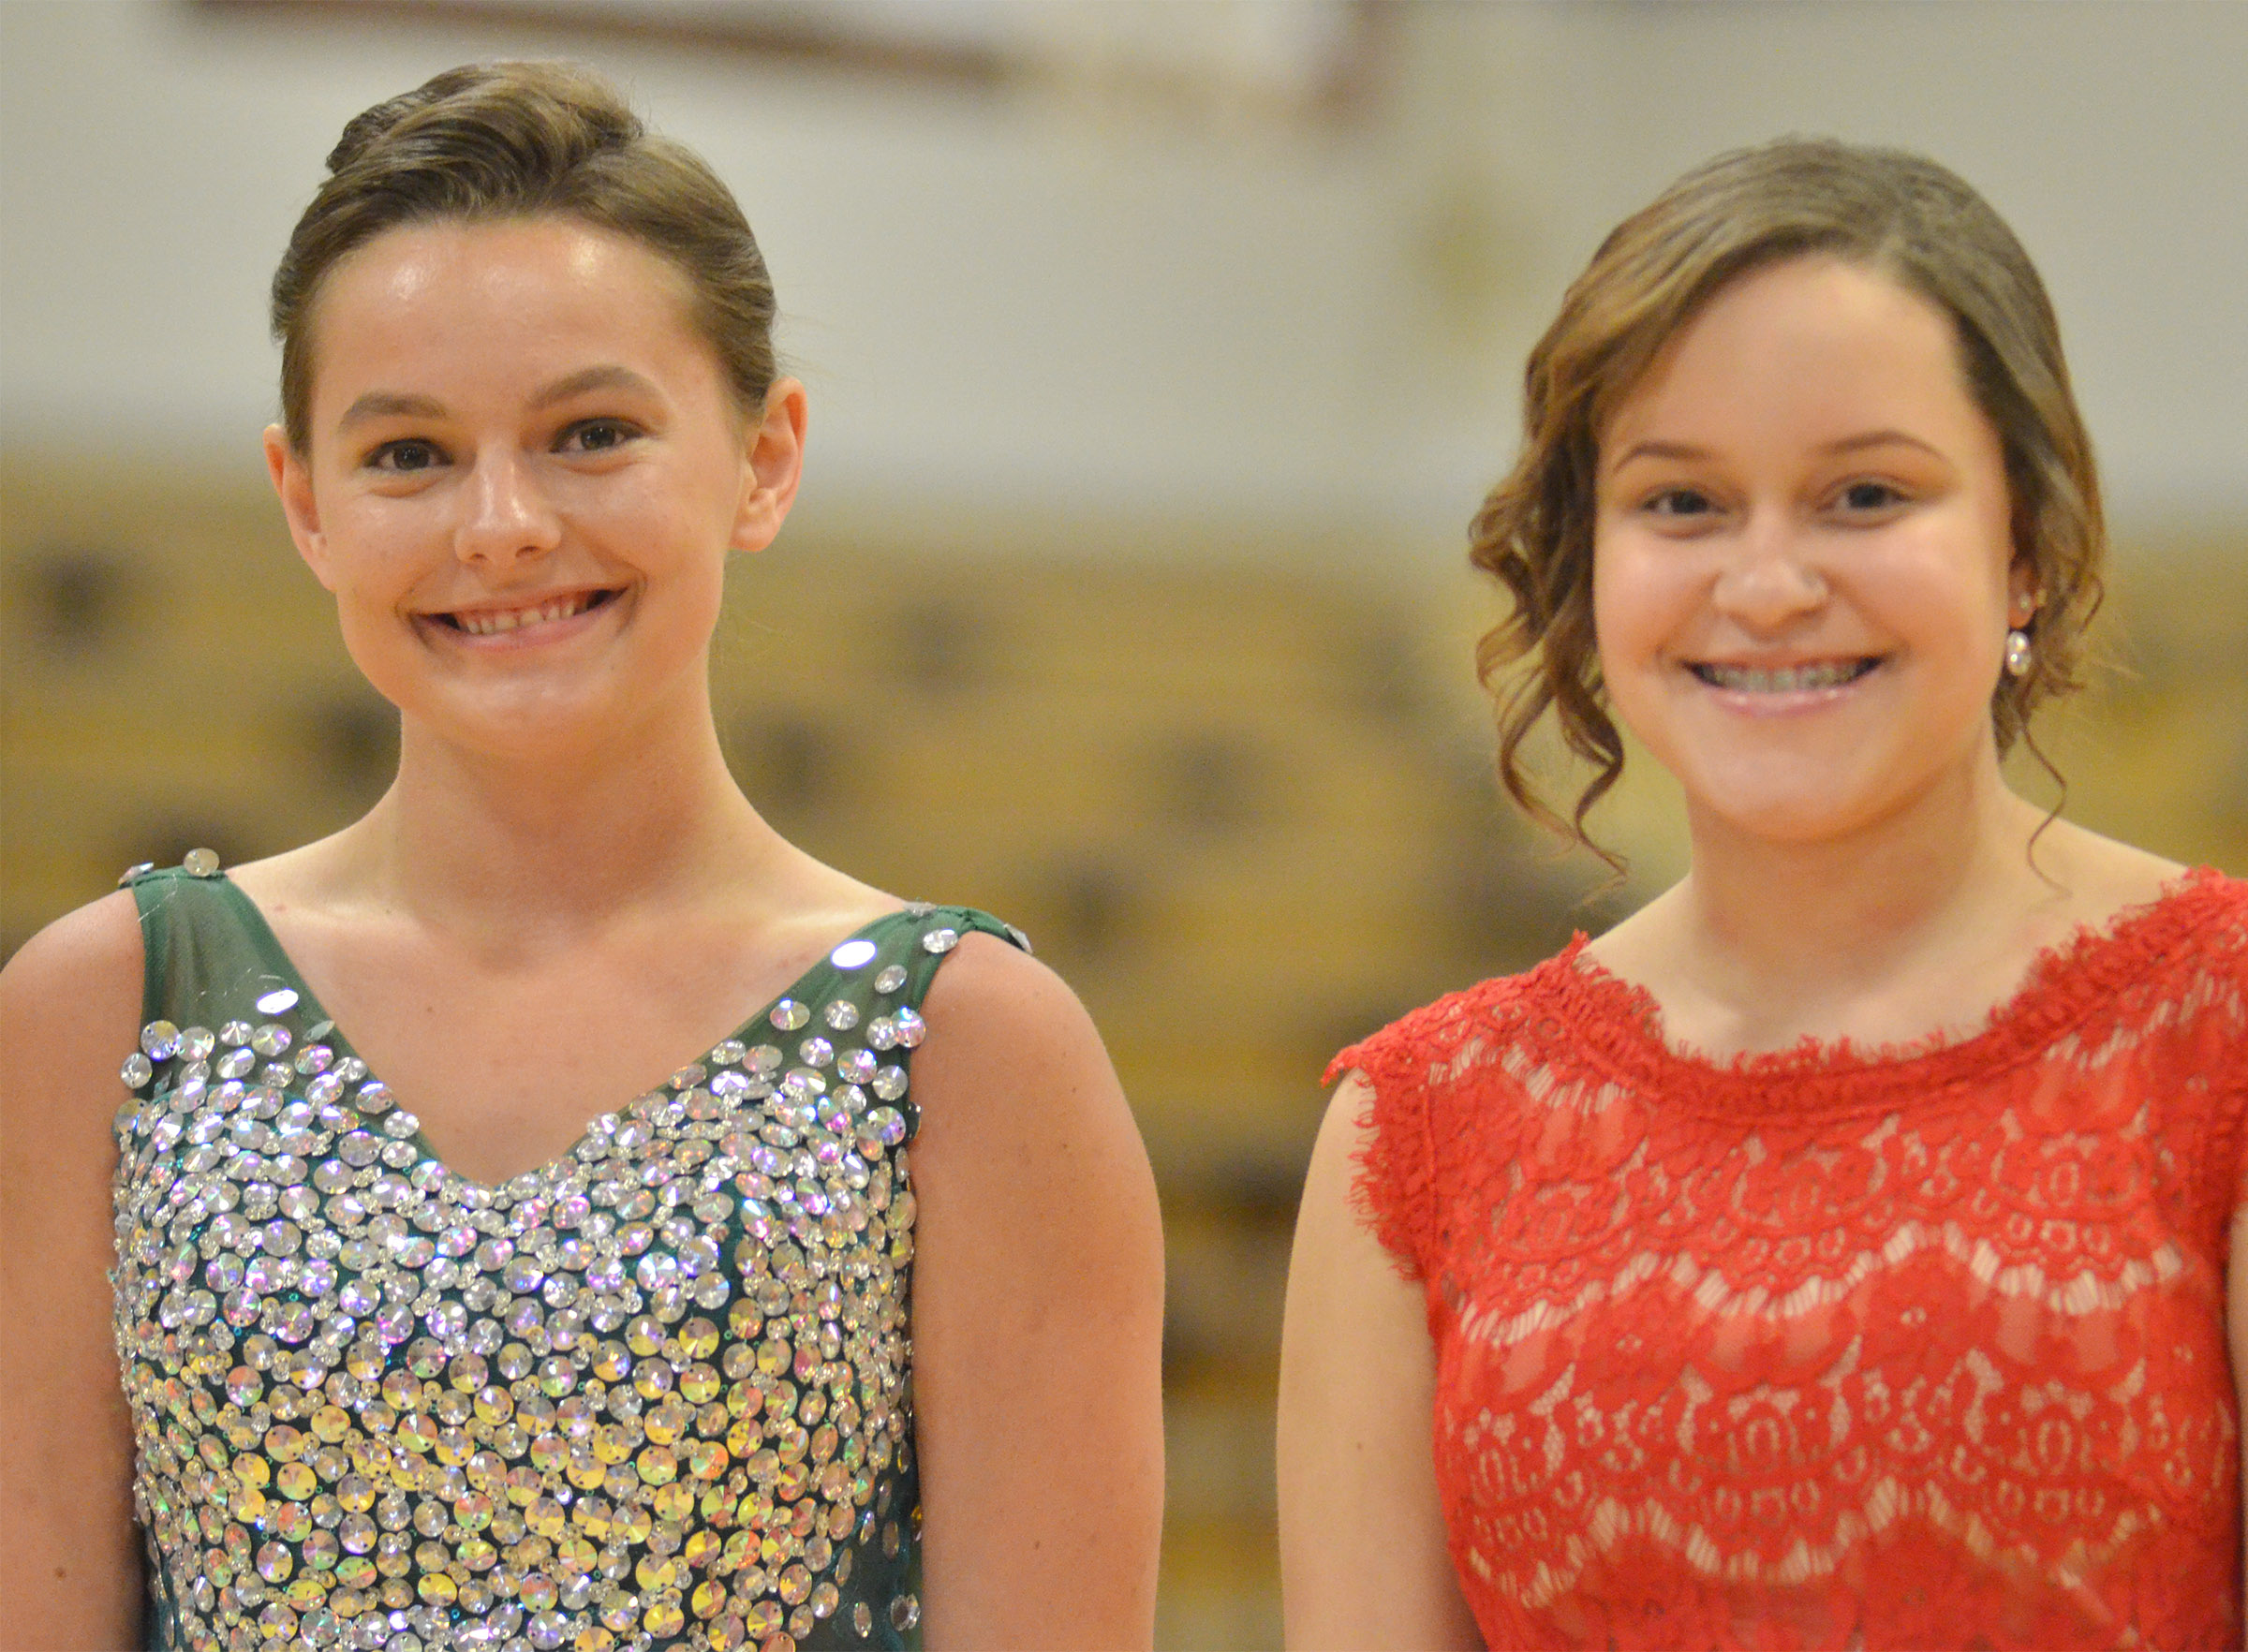 Kyrsten Hill, at left, and Breanna Spaulding smile as they walk into the gym.